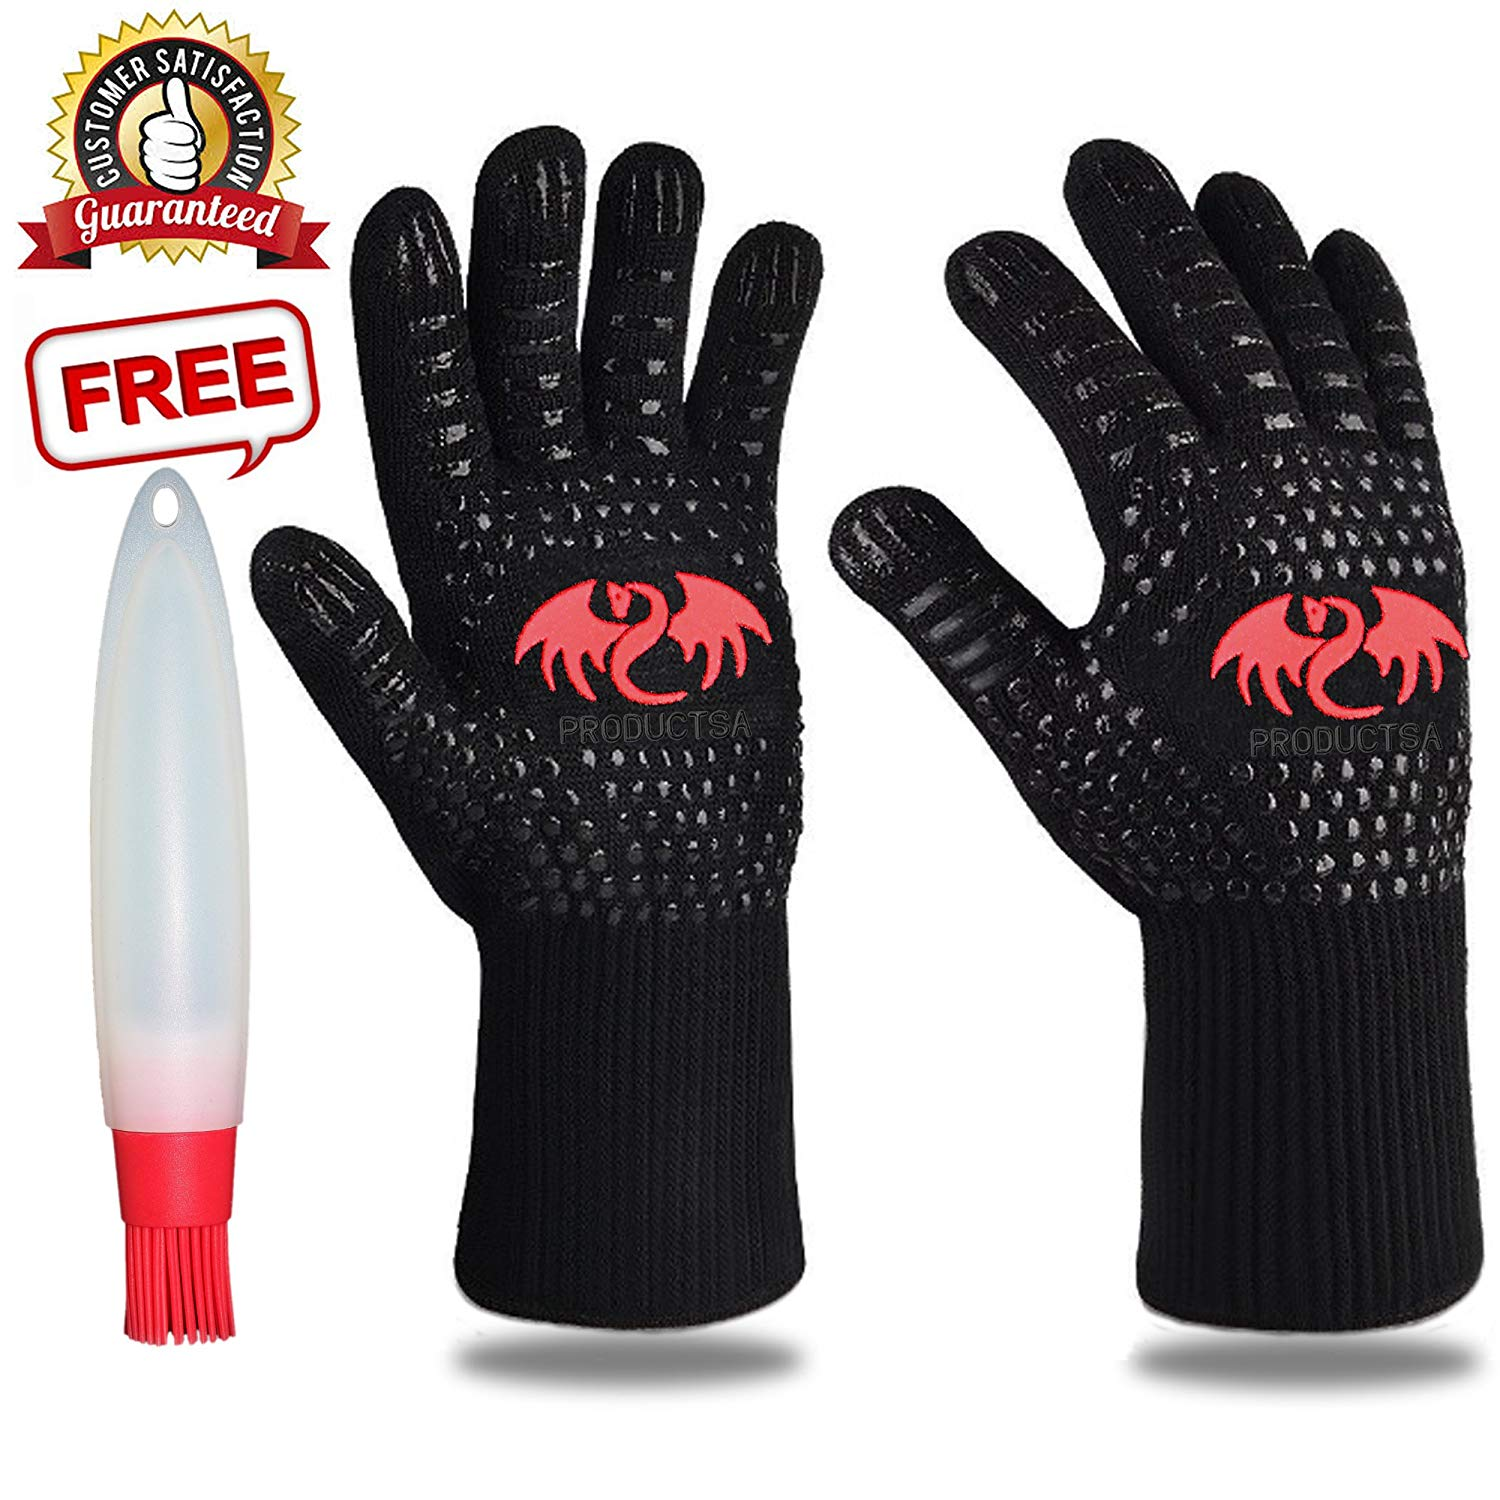 BBQ Grill Cooking Gloves 932°F Extreme High Heat Resistant Oven Baking Barbecue Grilling Gifts Gloves, Extra Large long cuff, EN407 Certified, Silicone Insulated Mitts, Bundle with Oil Bottle Brush